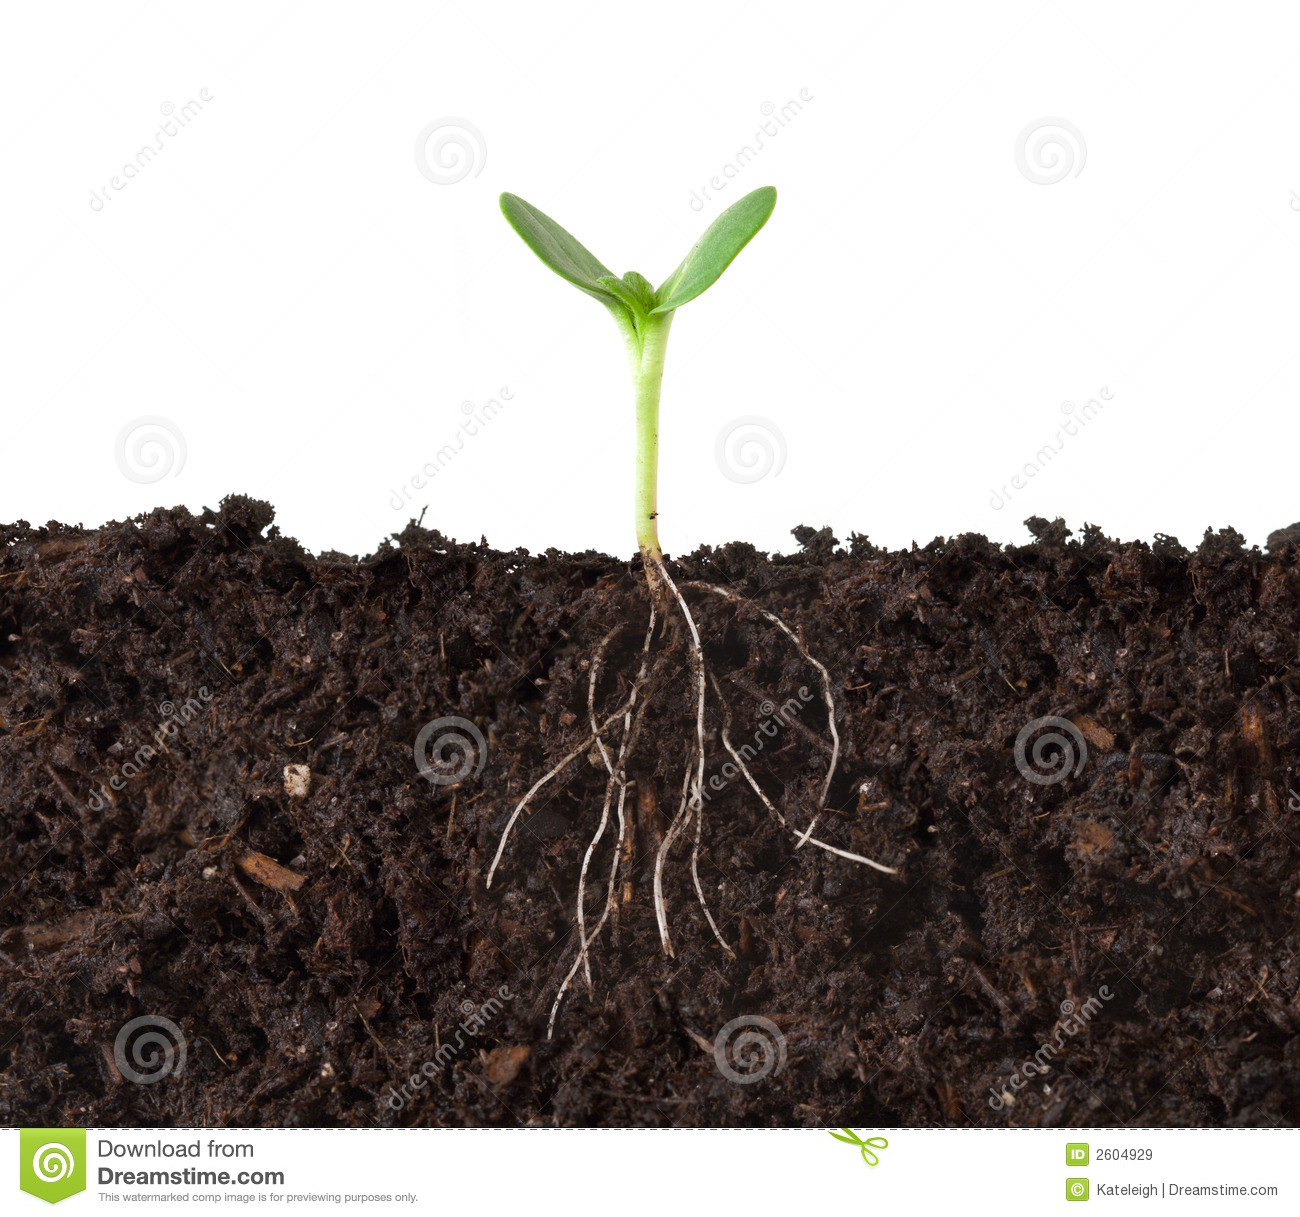 Royalty free plant images picture transparent download Cutaway Of Plant And Roots Royalty Free Stock Images - Image: 2604929 picture transparent download